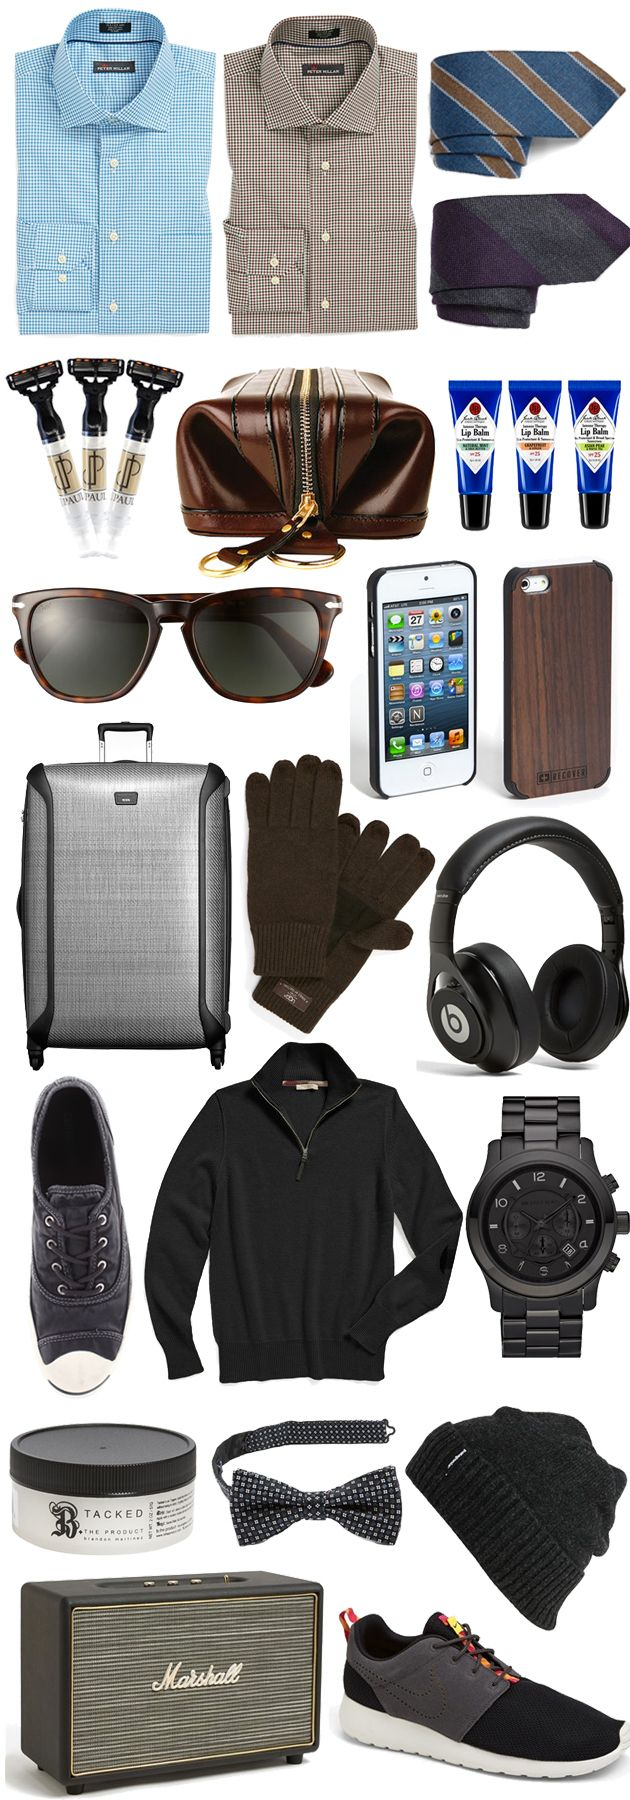 31 best Gift Guide for Him images on Pinterest | Gift guide, Gift ...